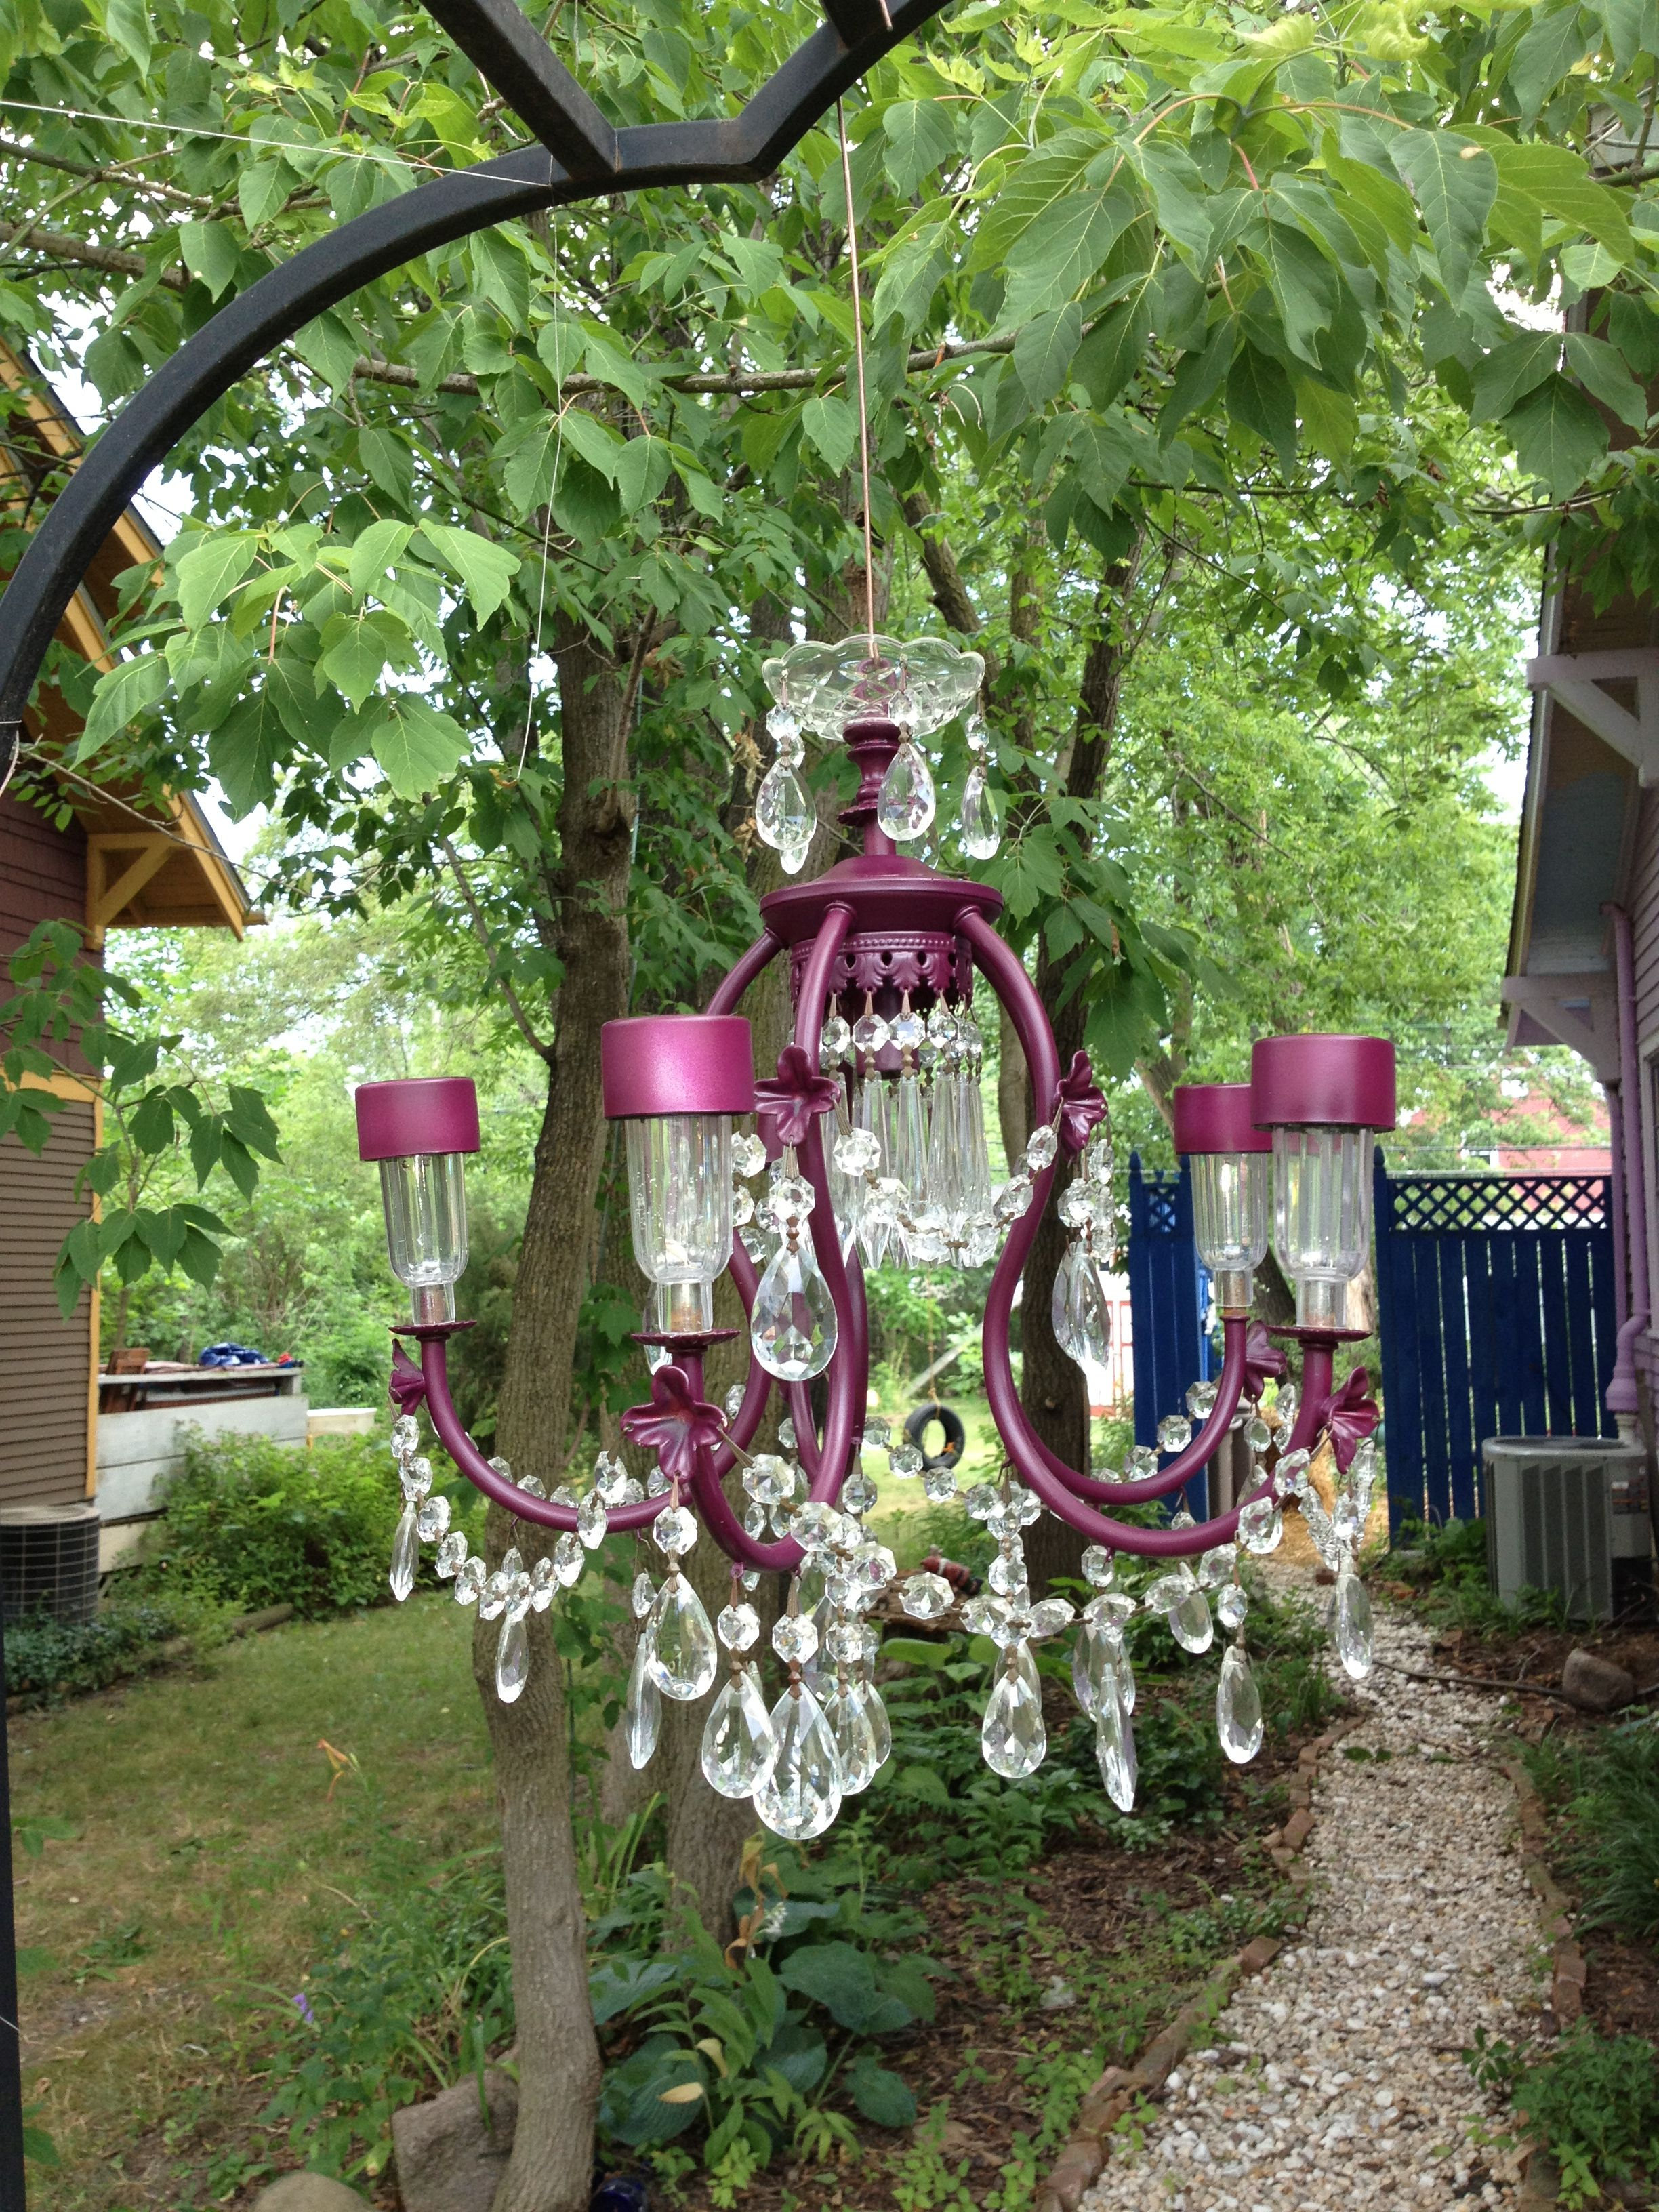 solar powered chandelier on pin by tereasa madson on outdoor living garden decor projects solar chandelier glass garden art pinterest